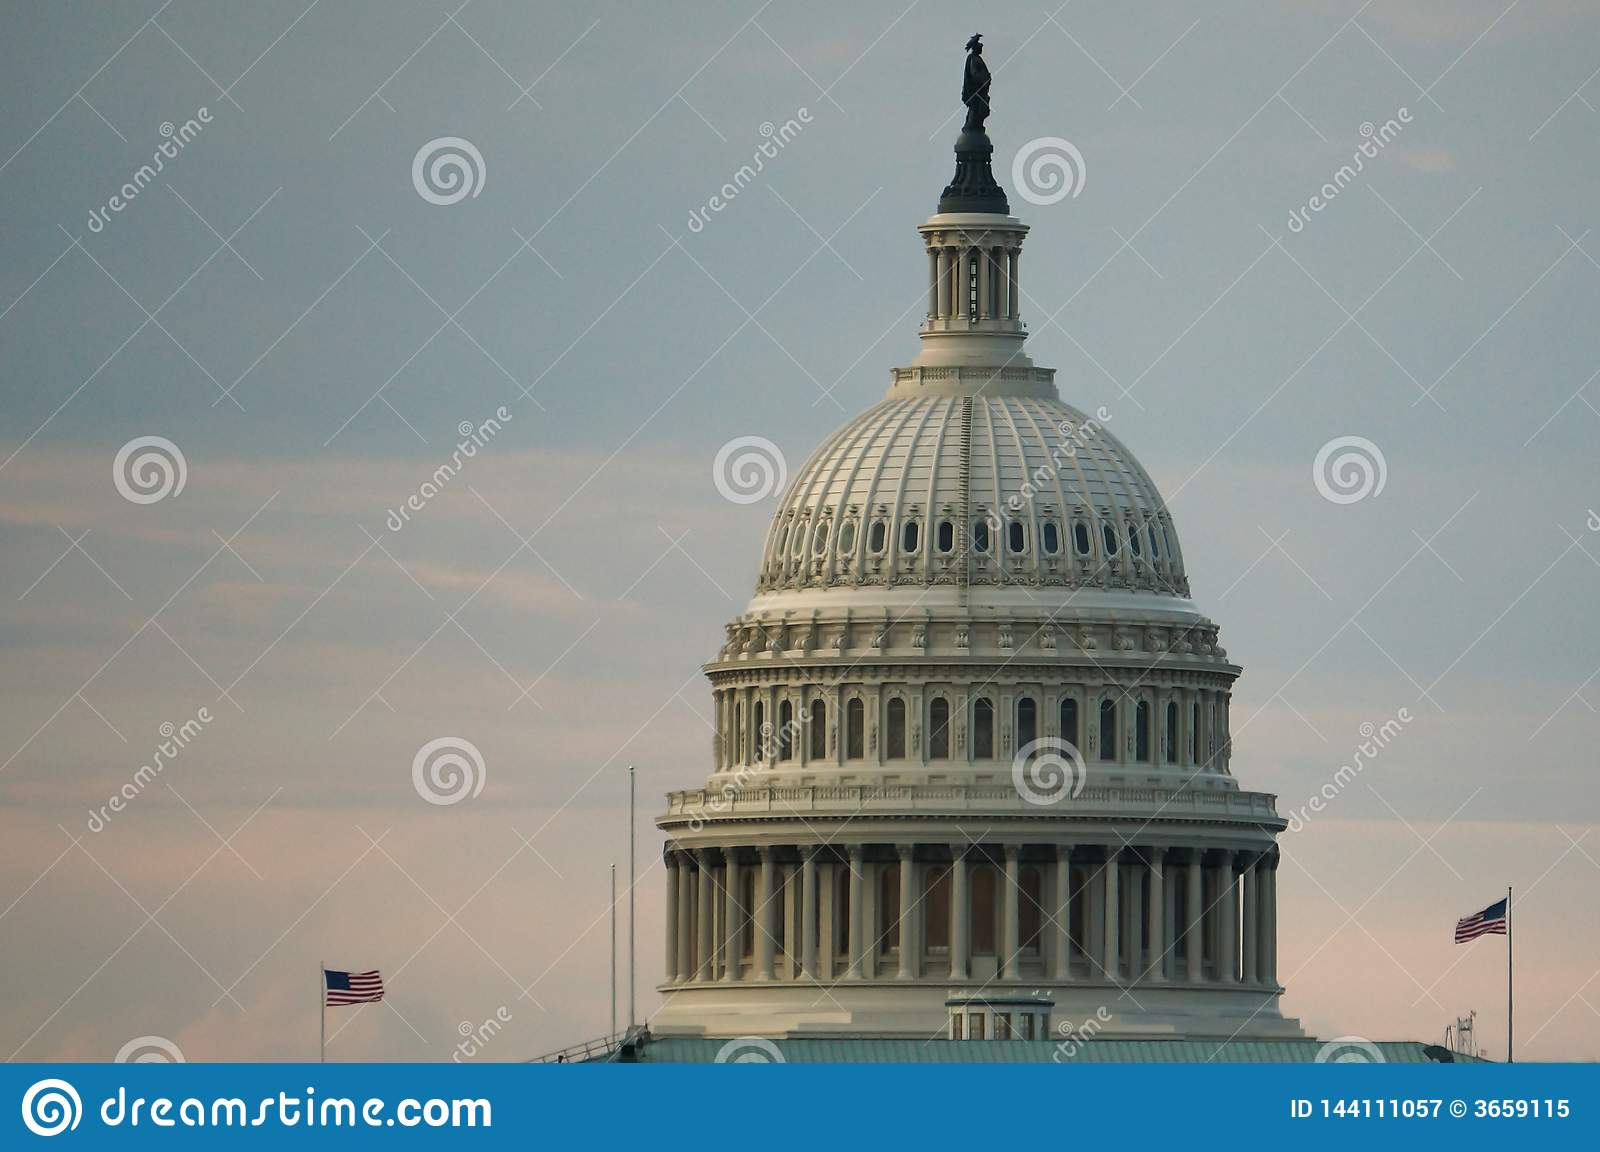 Washington, DC, USA. 08 18 2018. US Capitol dome with two flying flags at dawn or twilight.